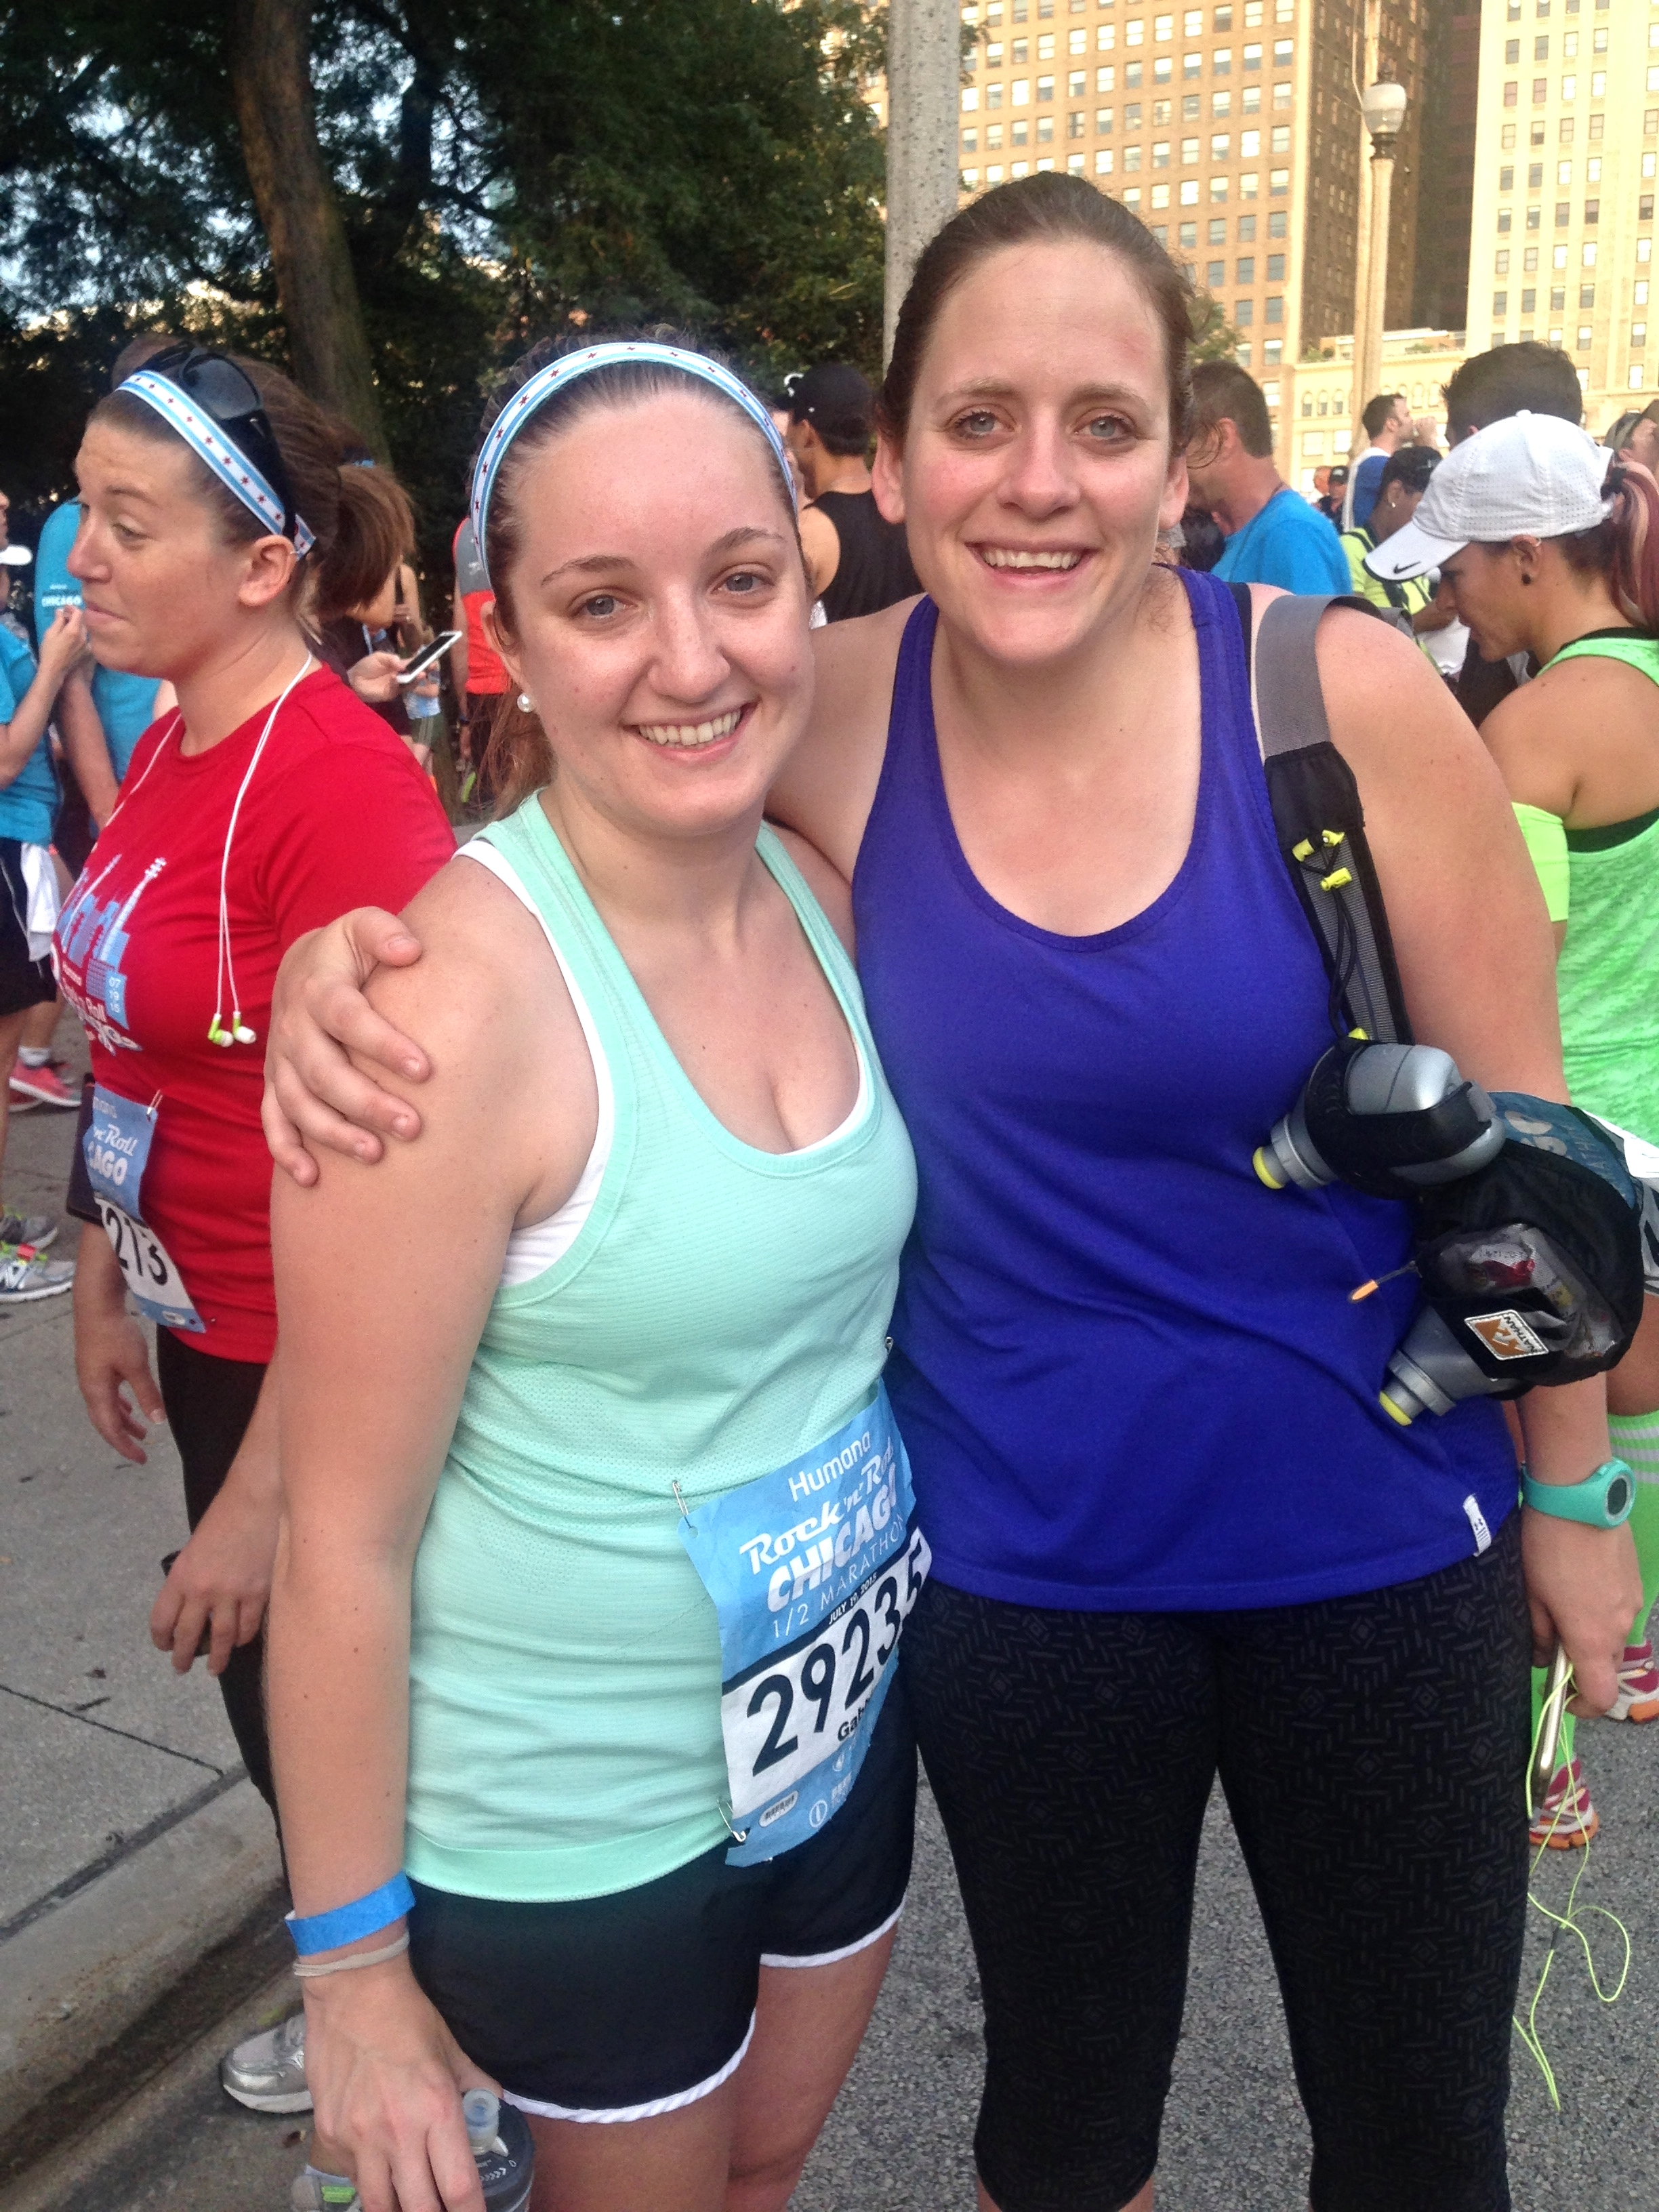 Heather and I at the Chicago Rock and Roll Half - July 2015